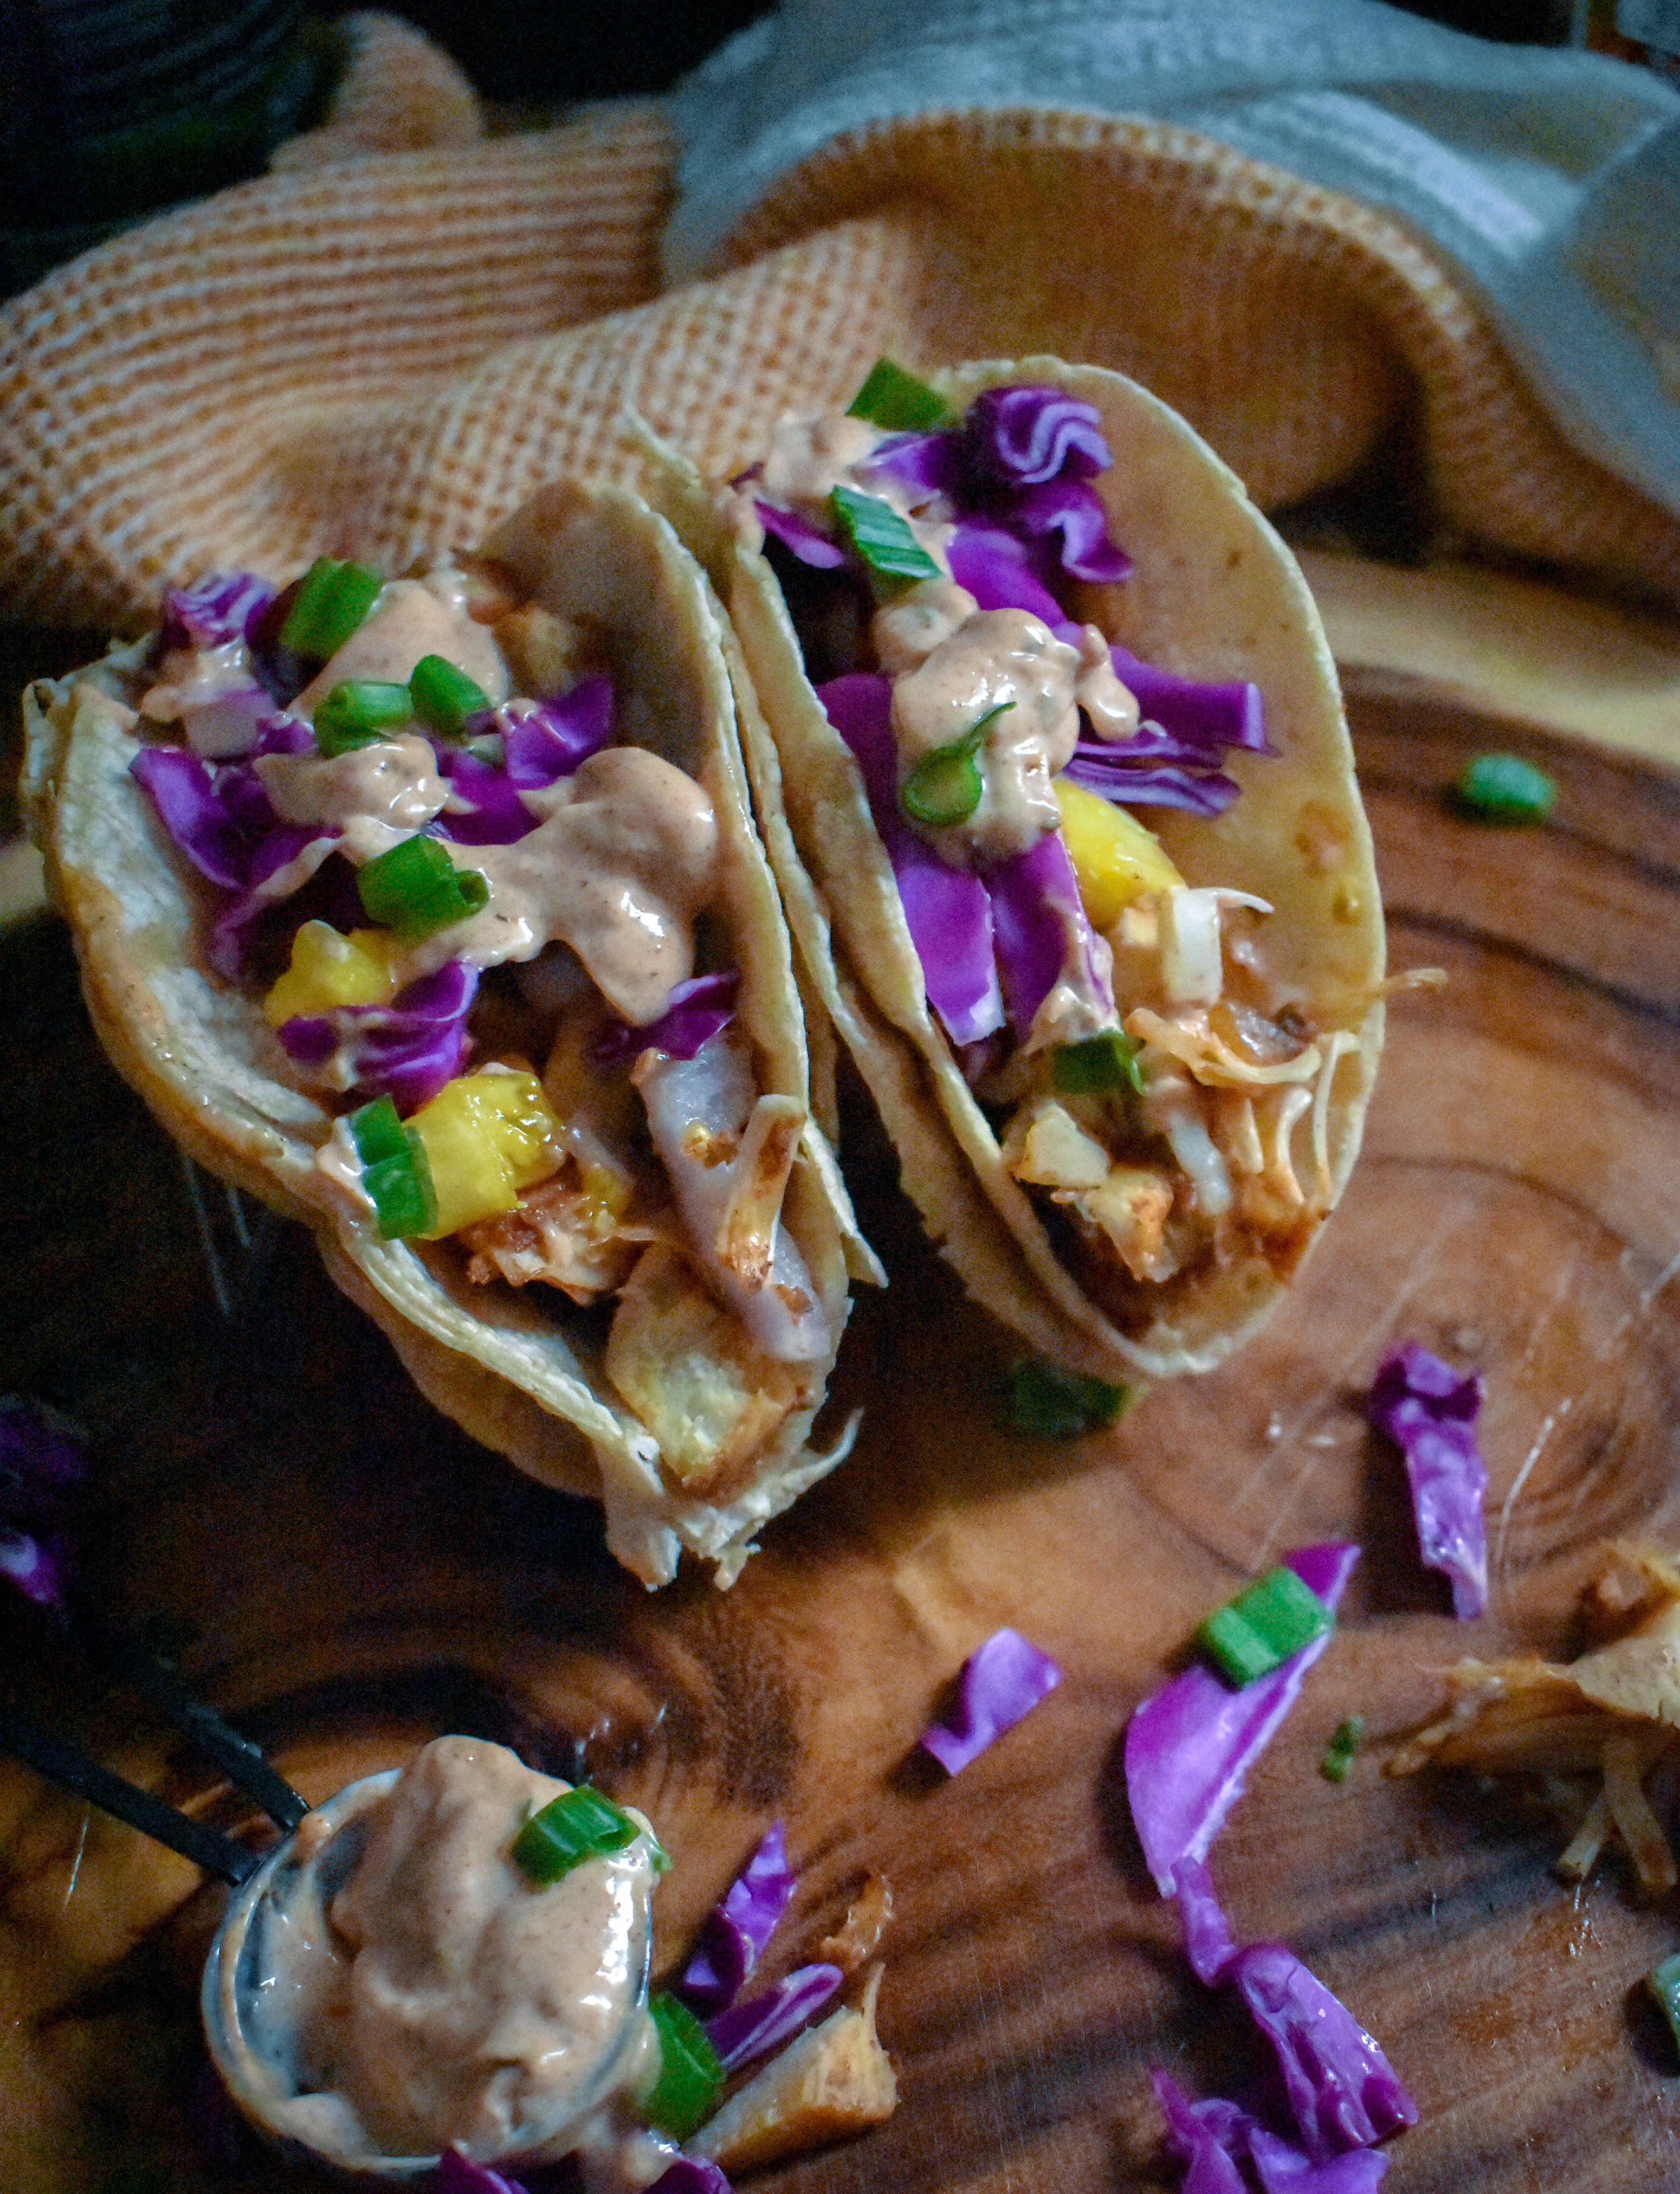 6. To construct, add jerk chicken then cabbage then slaw and finally the aioli.